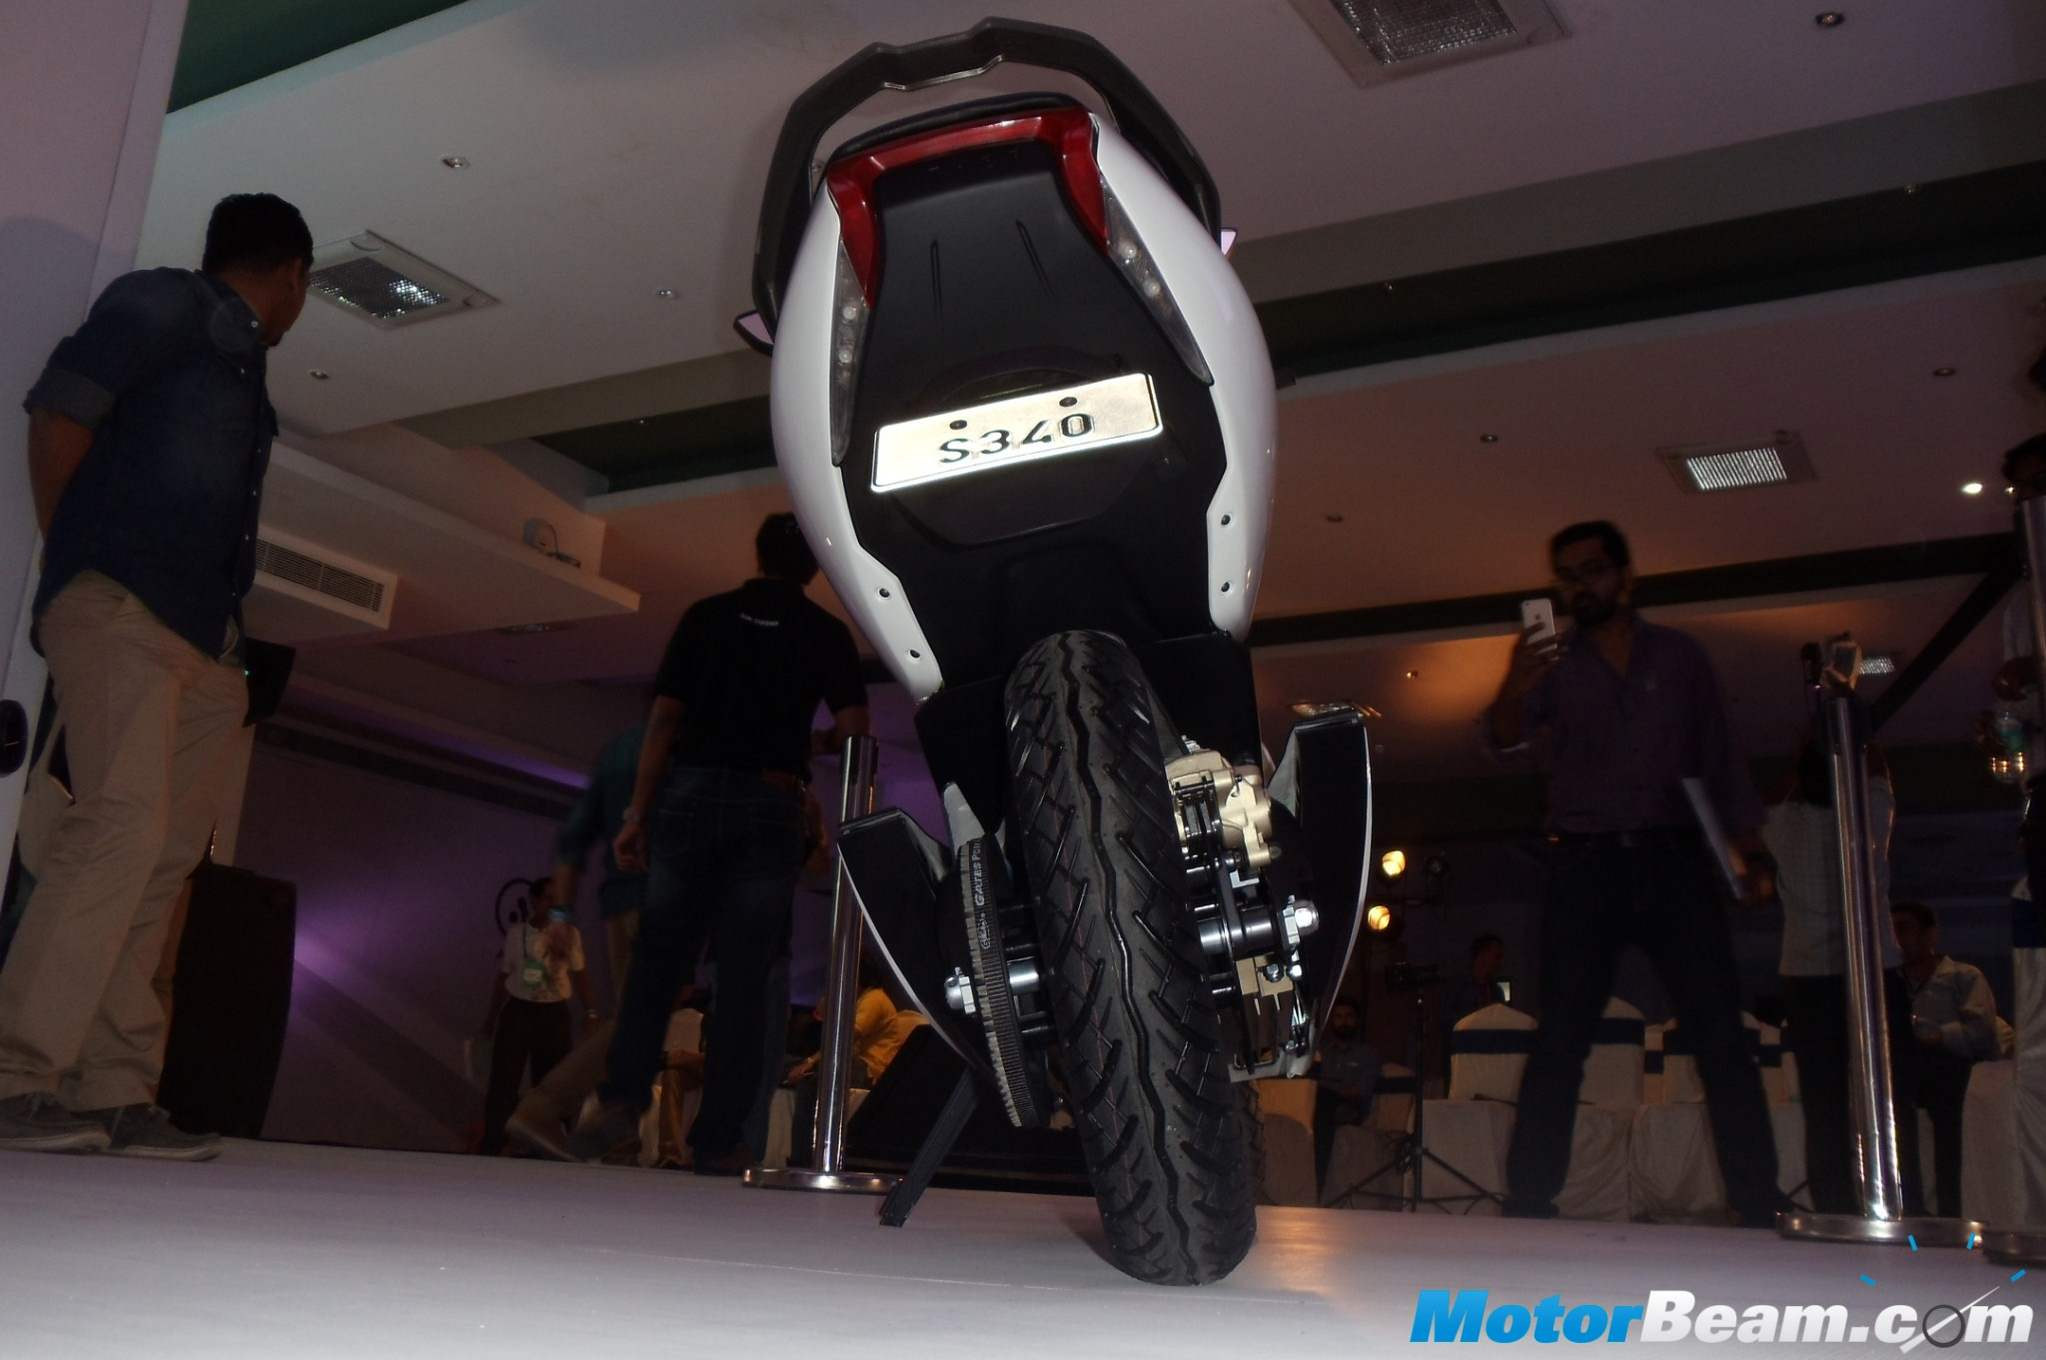 Ather S340 Rear Wheel